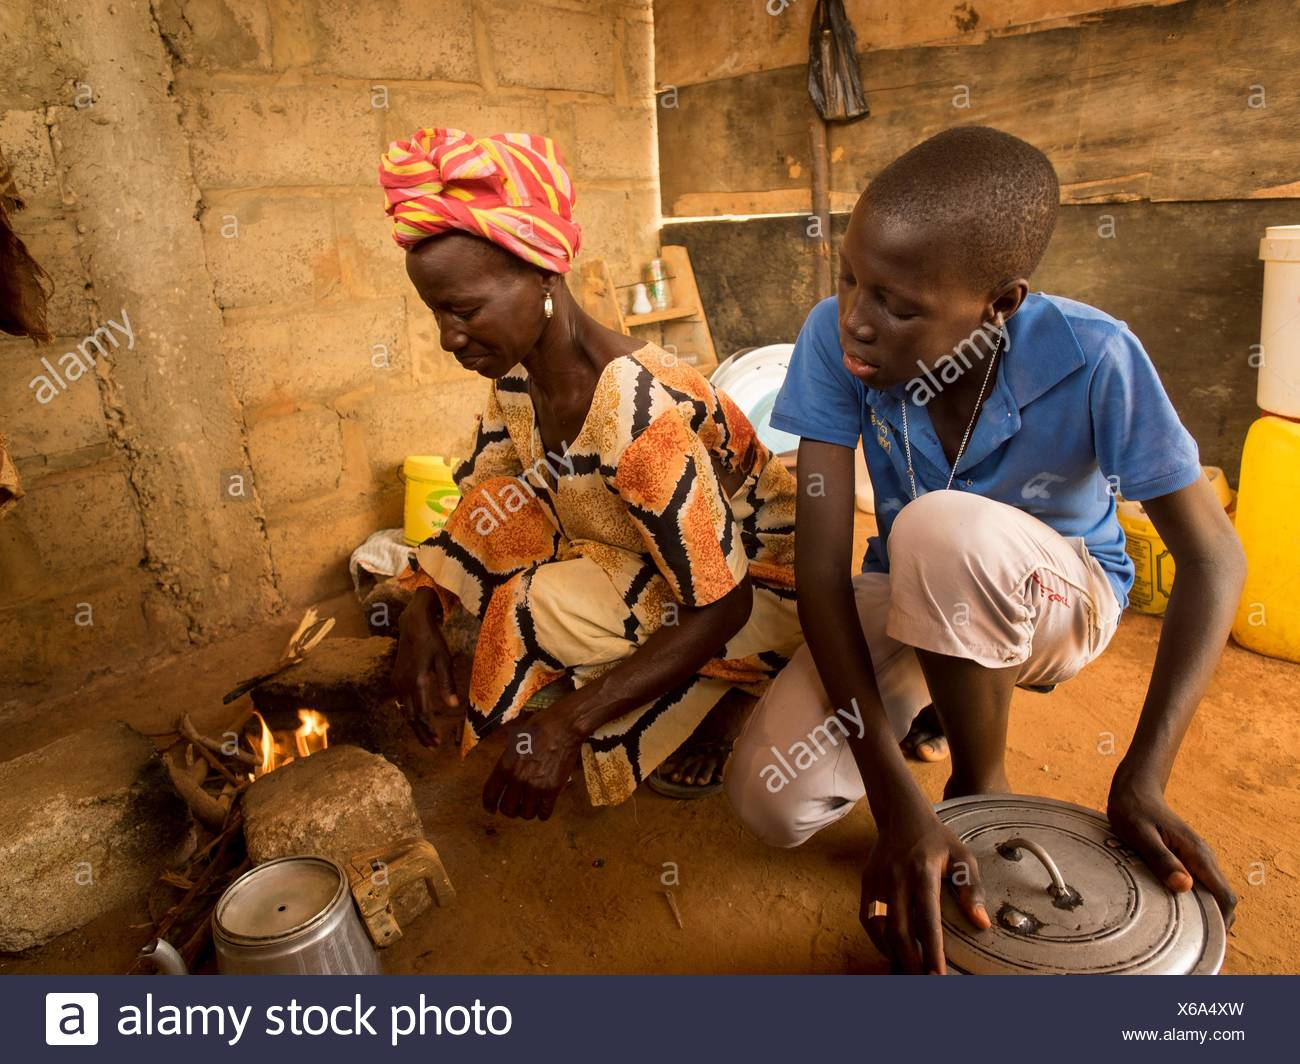 A boy helps his mother in their basic kitchen. - Stock Image